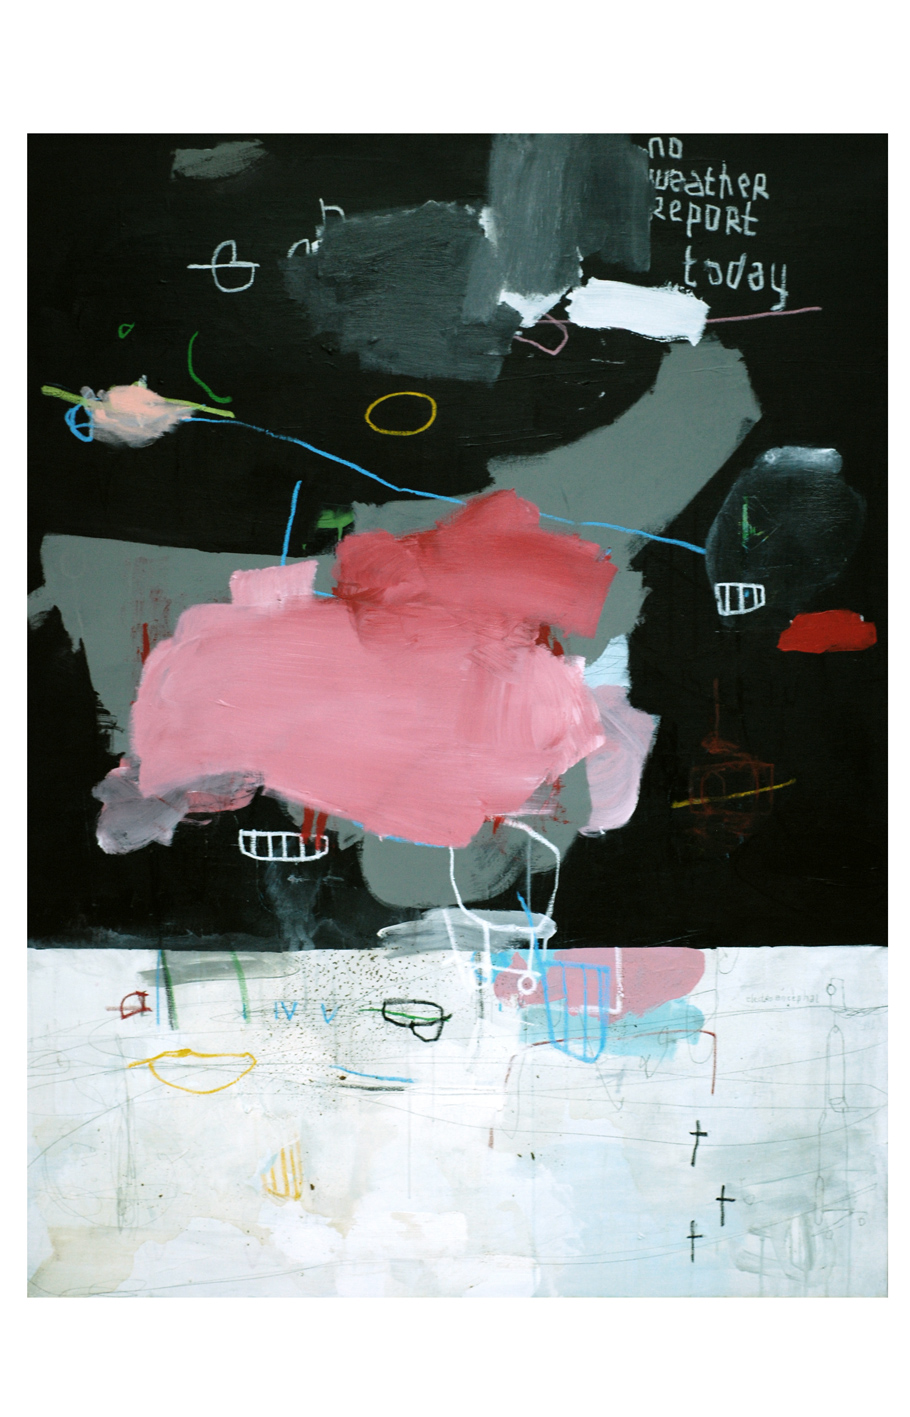 acrylic and more on canvas 146 x 114 cm _ 57 x 44 inches